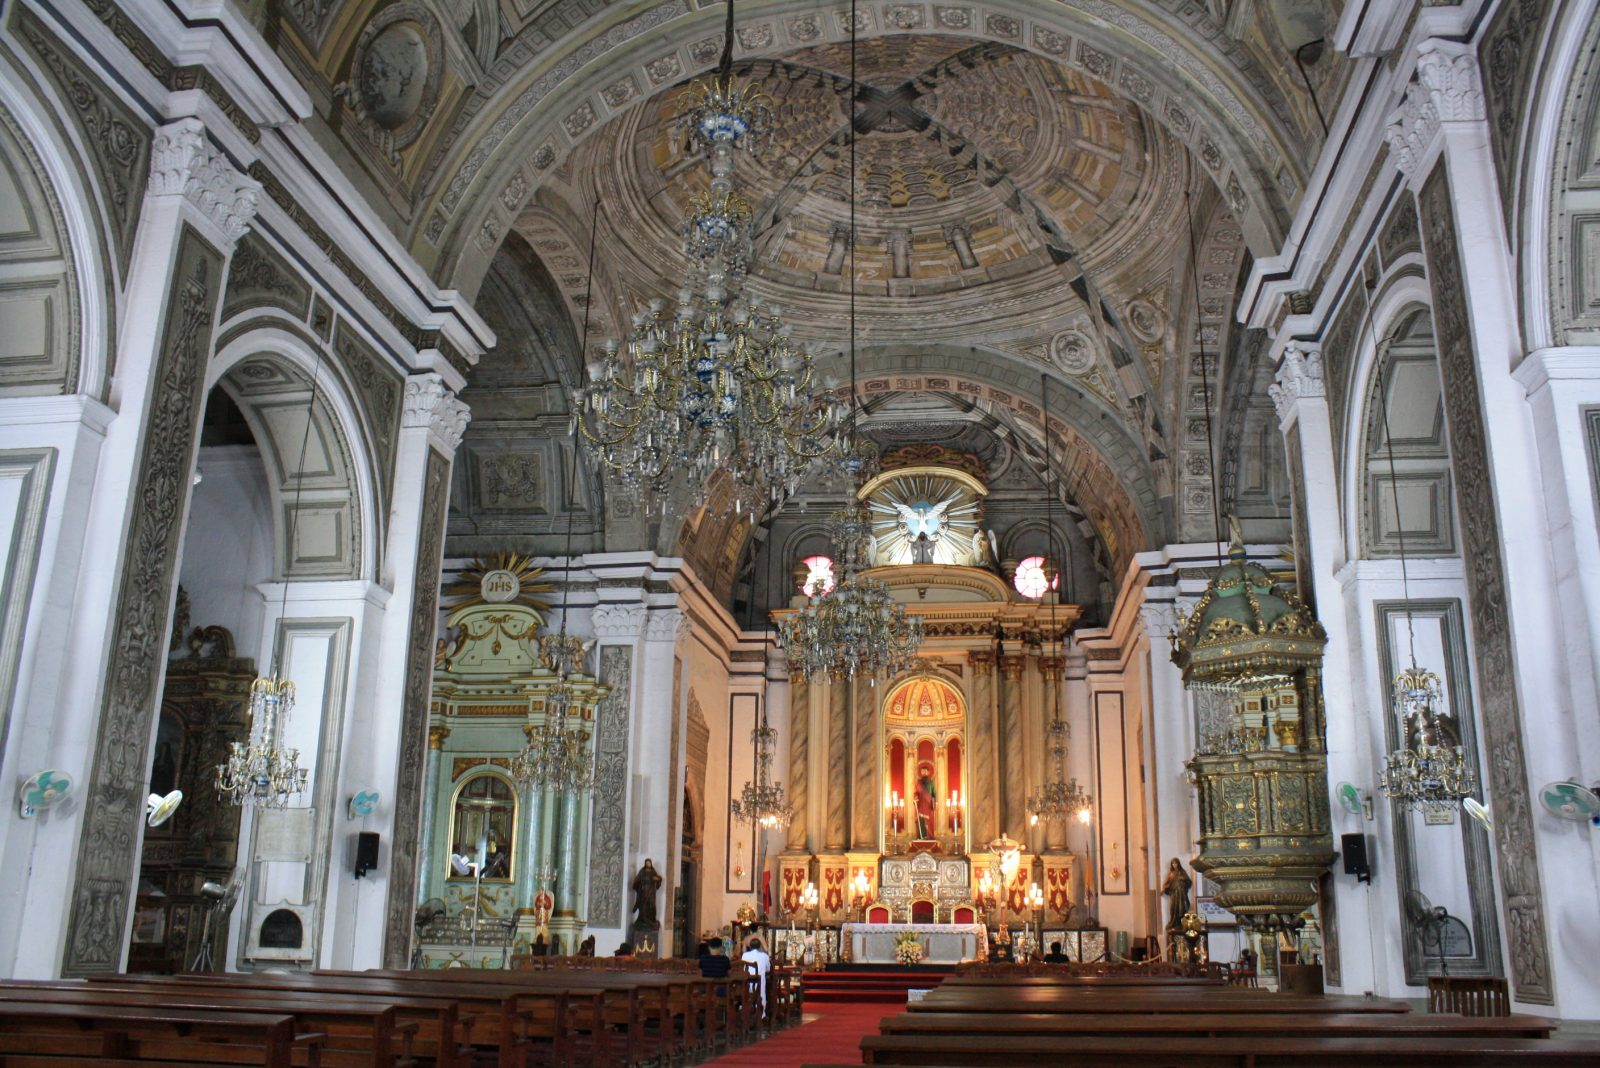 San Agustin Church in Intramuros, Manila. Photo by Ching Dee.